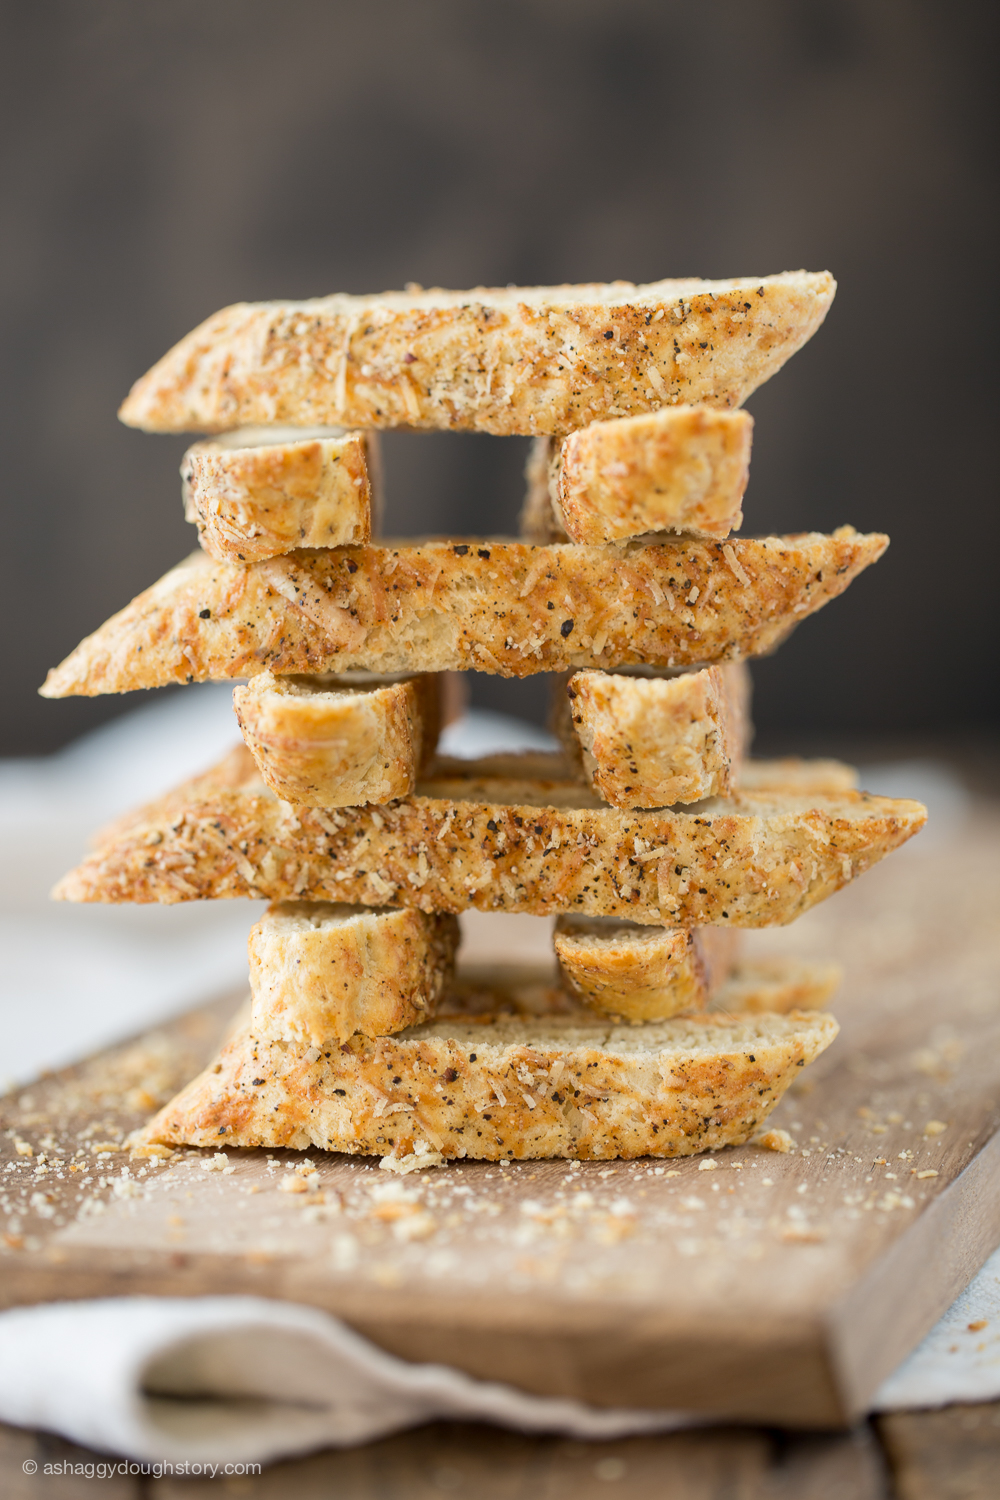 A biscotti bonus—play with your food. It's Biscotti Jenga!